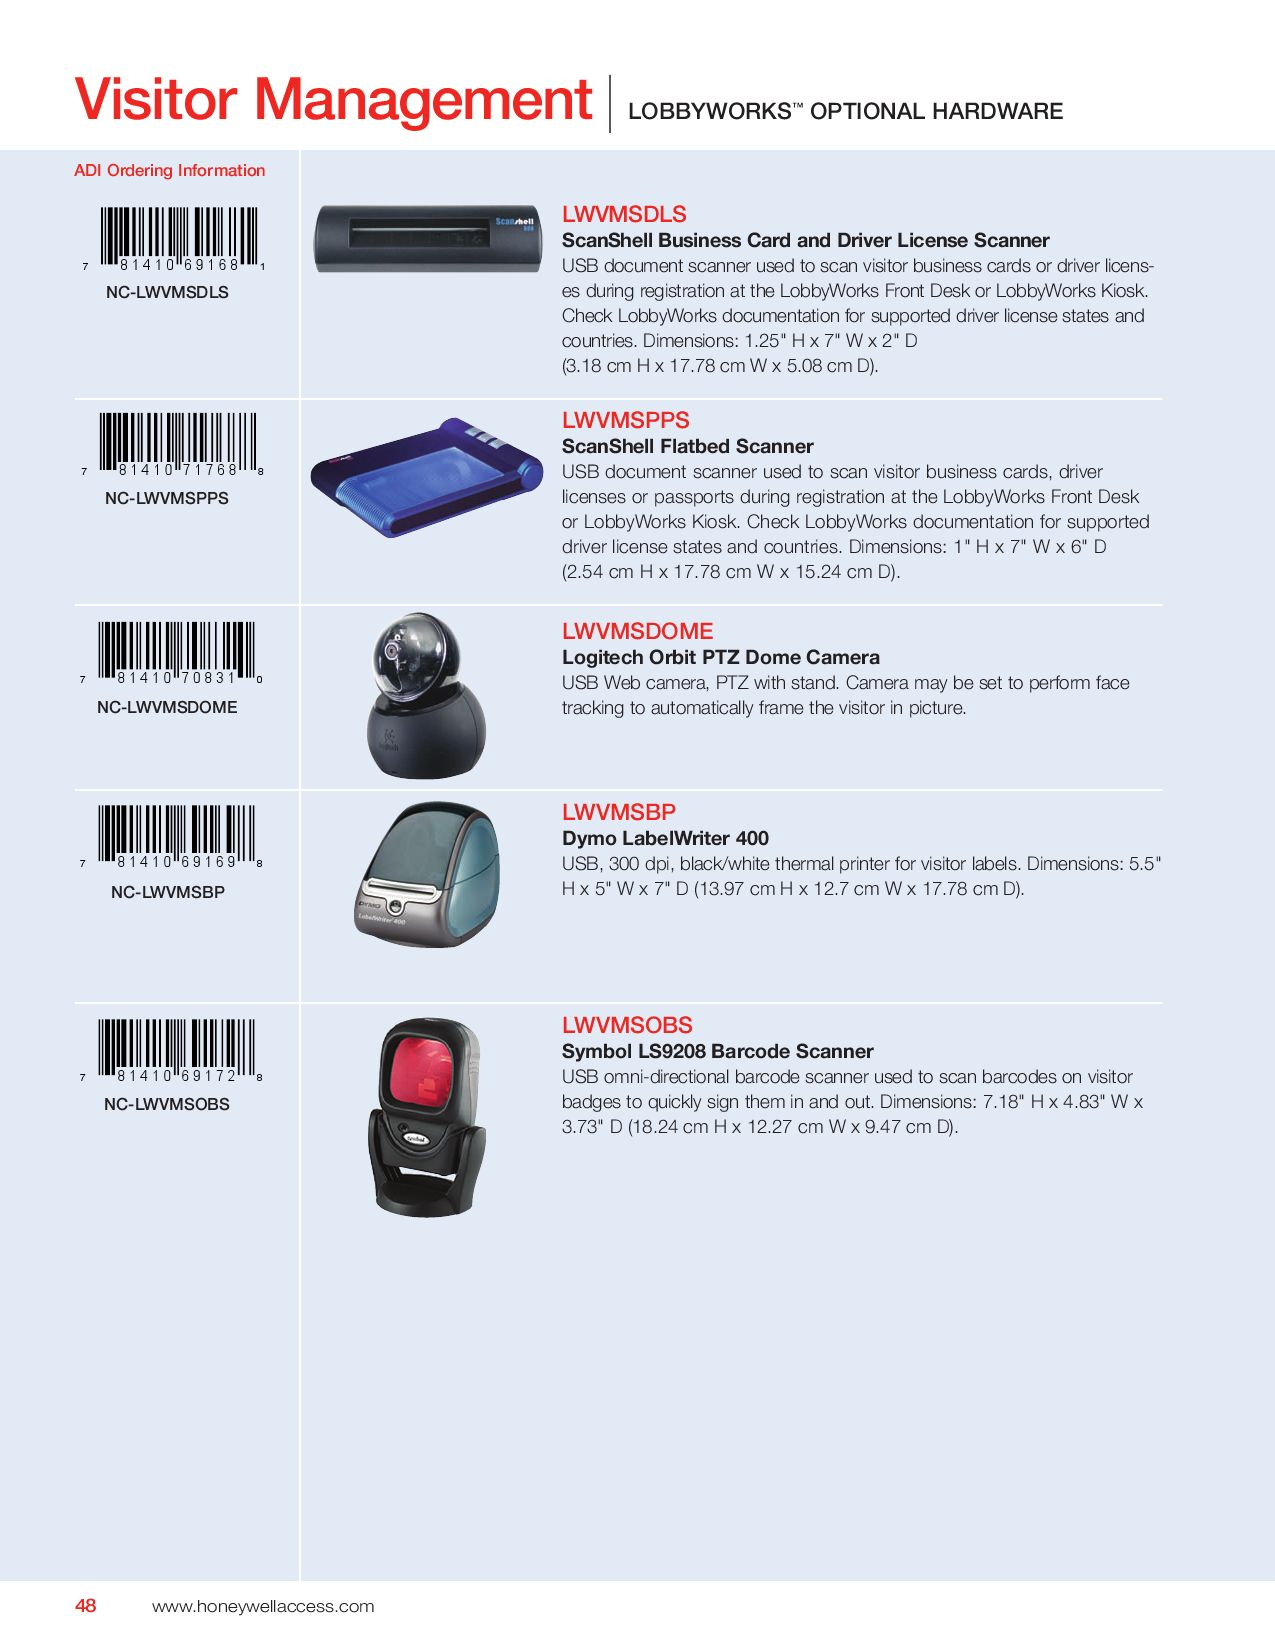 honeywell access products by christopher m issuu